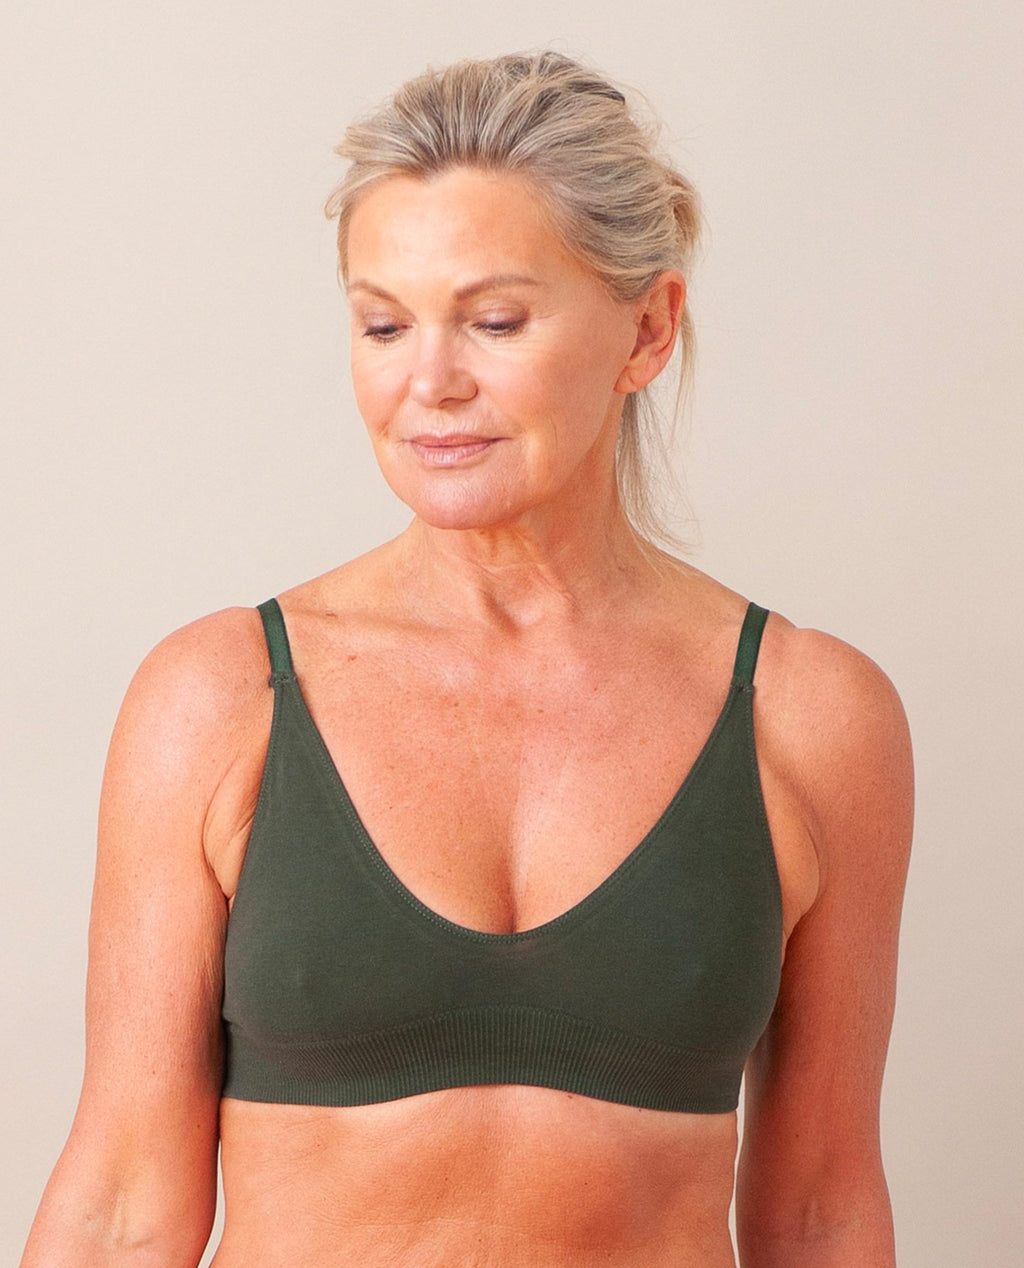 ILZE Organic Cotton Bra In Khaki